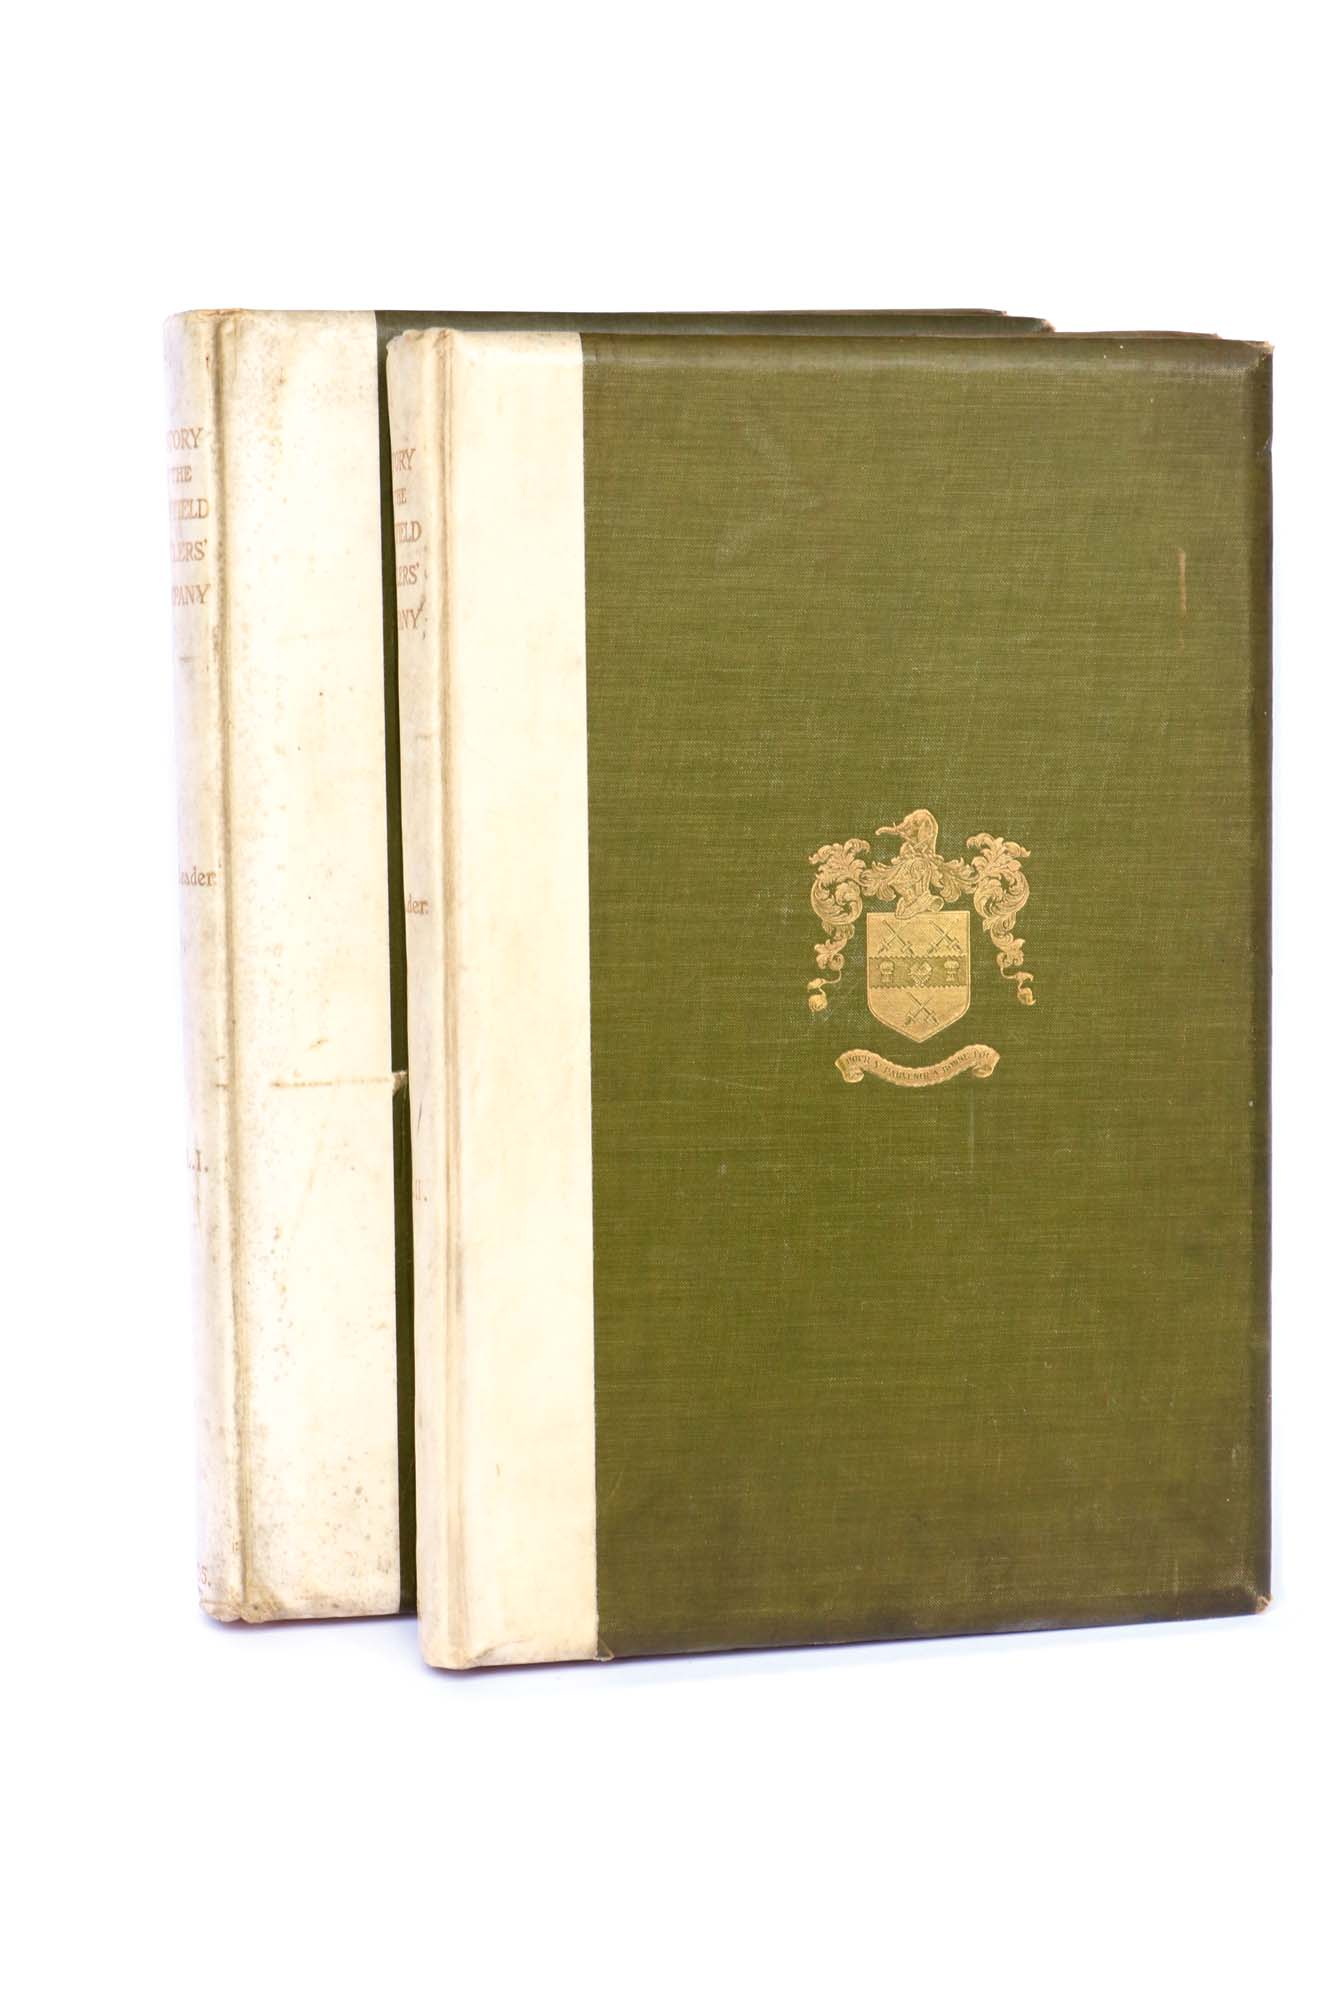 Lot 19 - Leader, R.E: History of the Company of Cutlers in Hallamshire, Vols I & II with cloth boards &